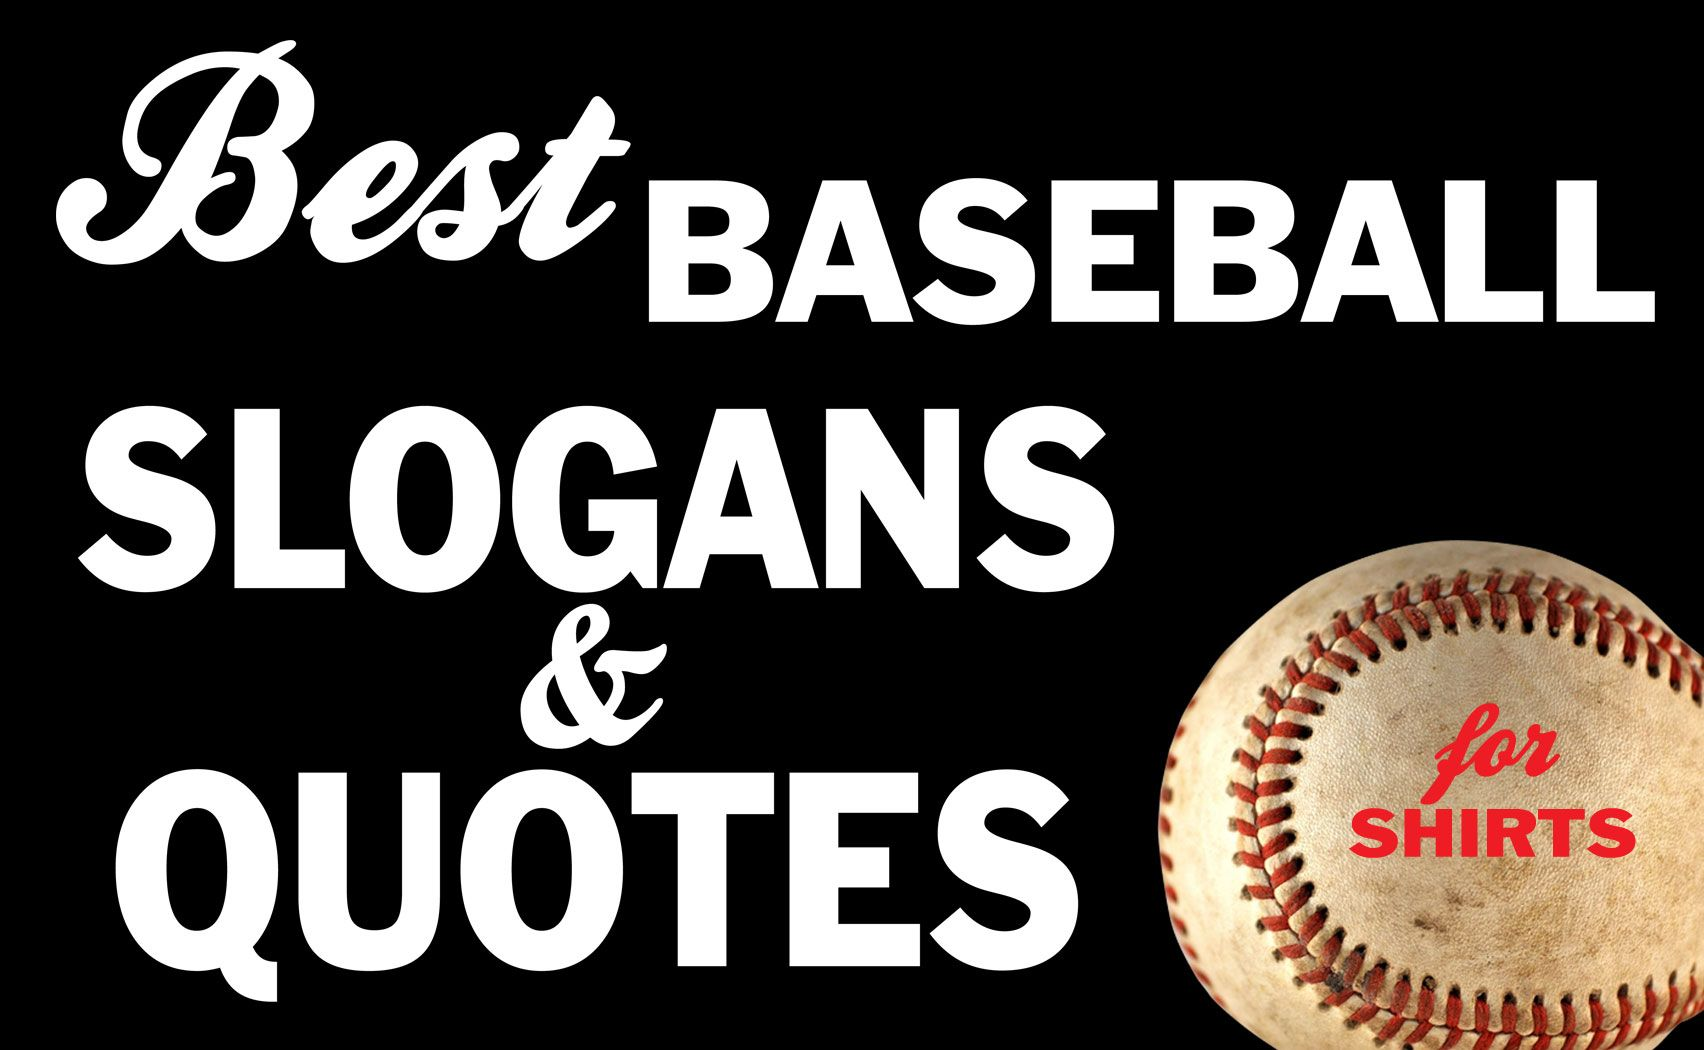 bes baseball slogans and quotes for shirts